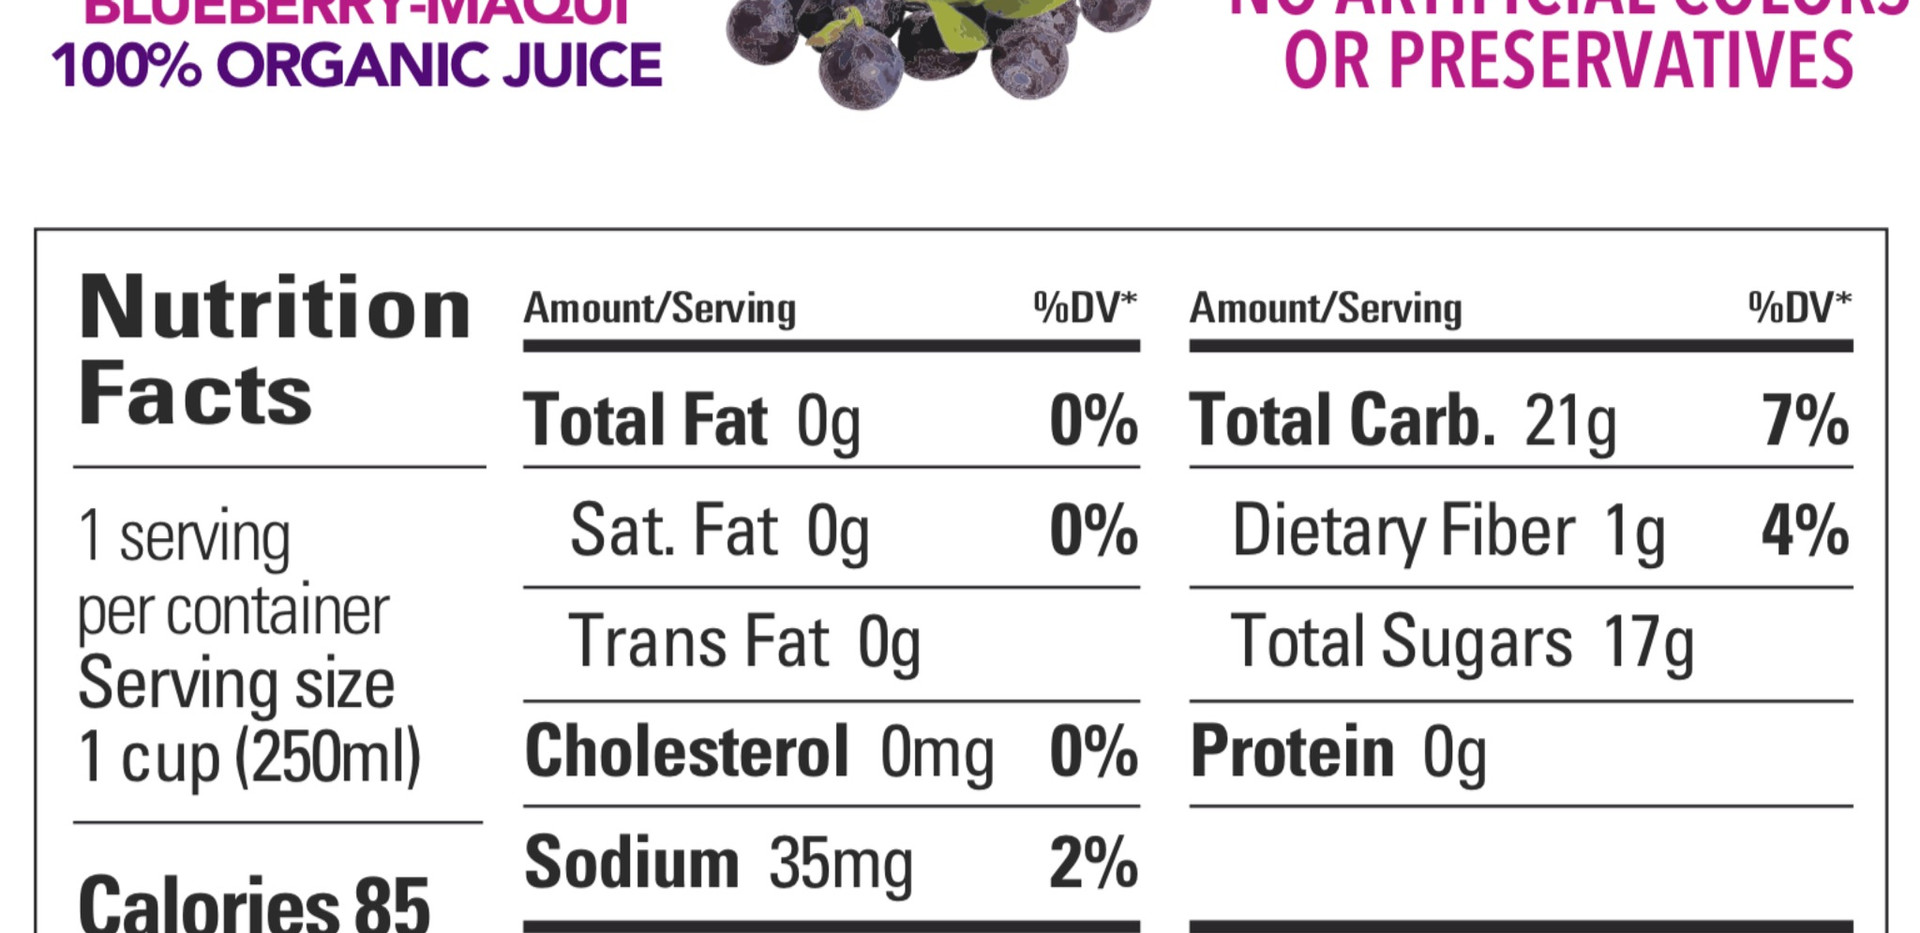 Blueberry Maqui Nutrition Facts